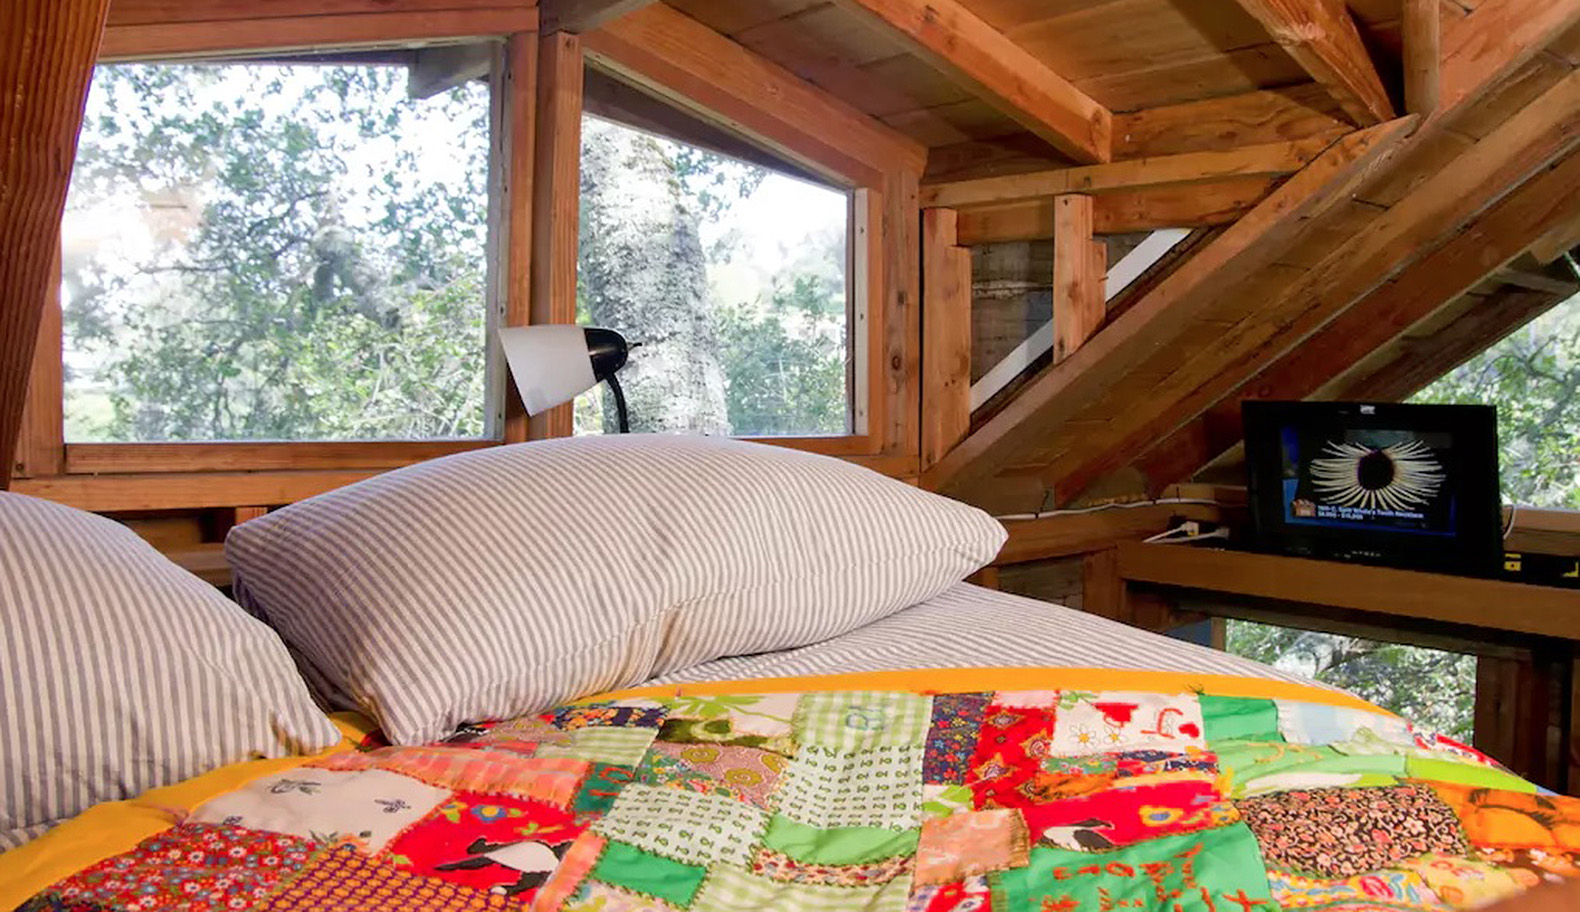 Doug And Lindau0027s Treehouse, Treehouse, Airbnb, San Francisco, Treehouse,  Green Architecture